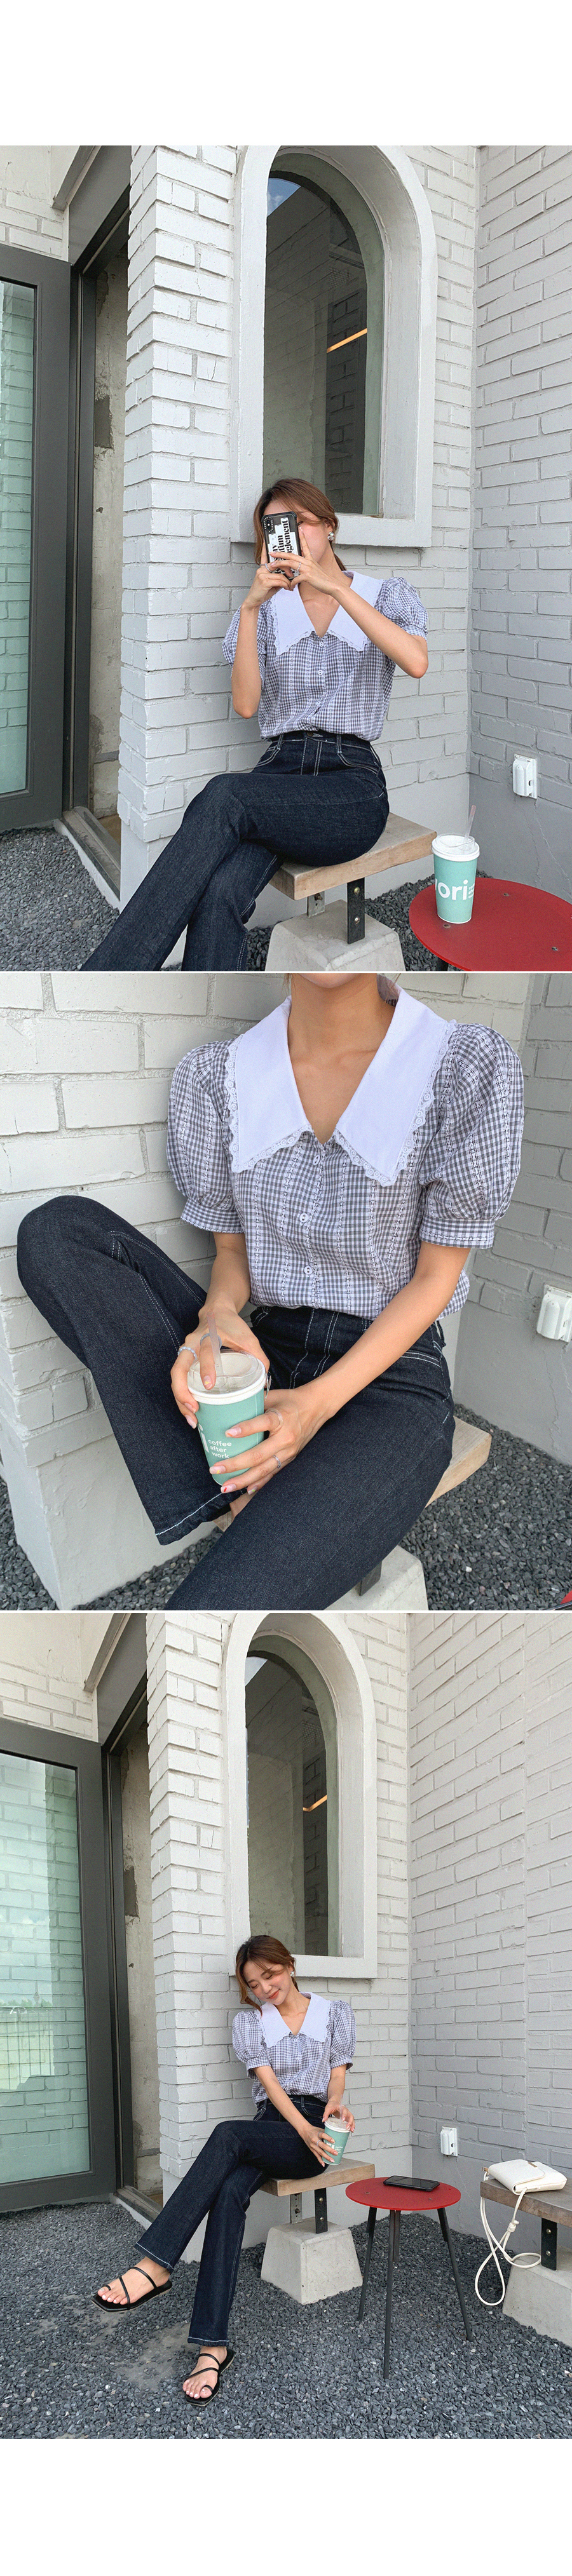 The reason I'm attracted to you is collar lace blouse